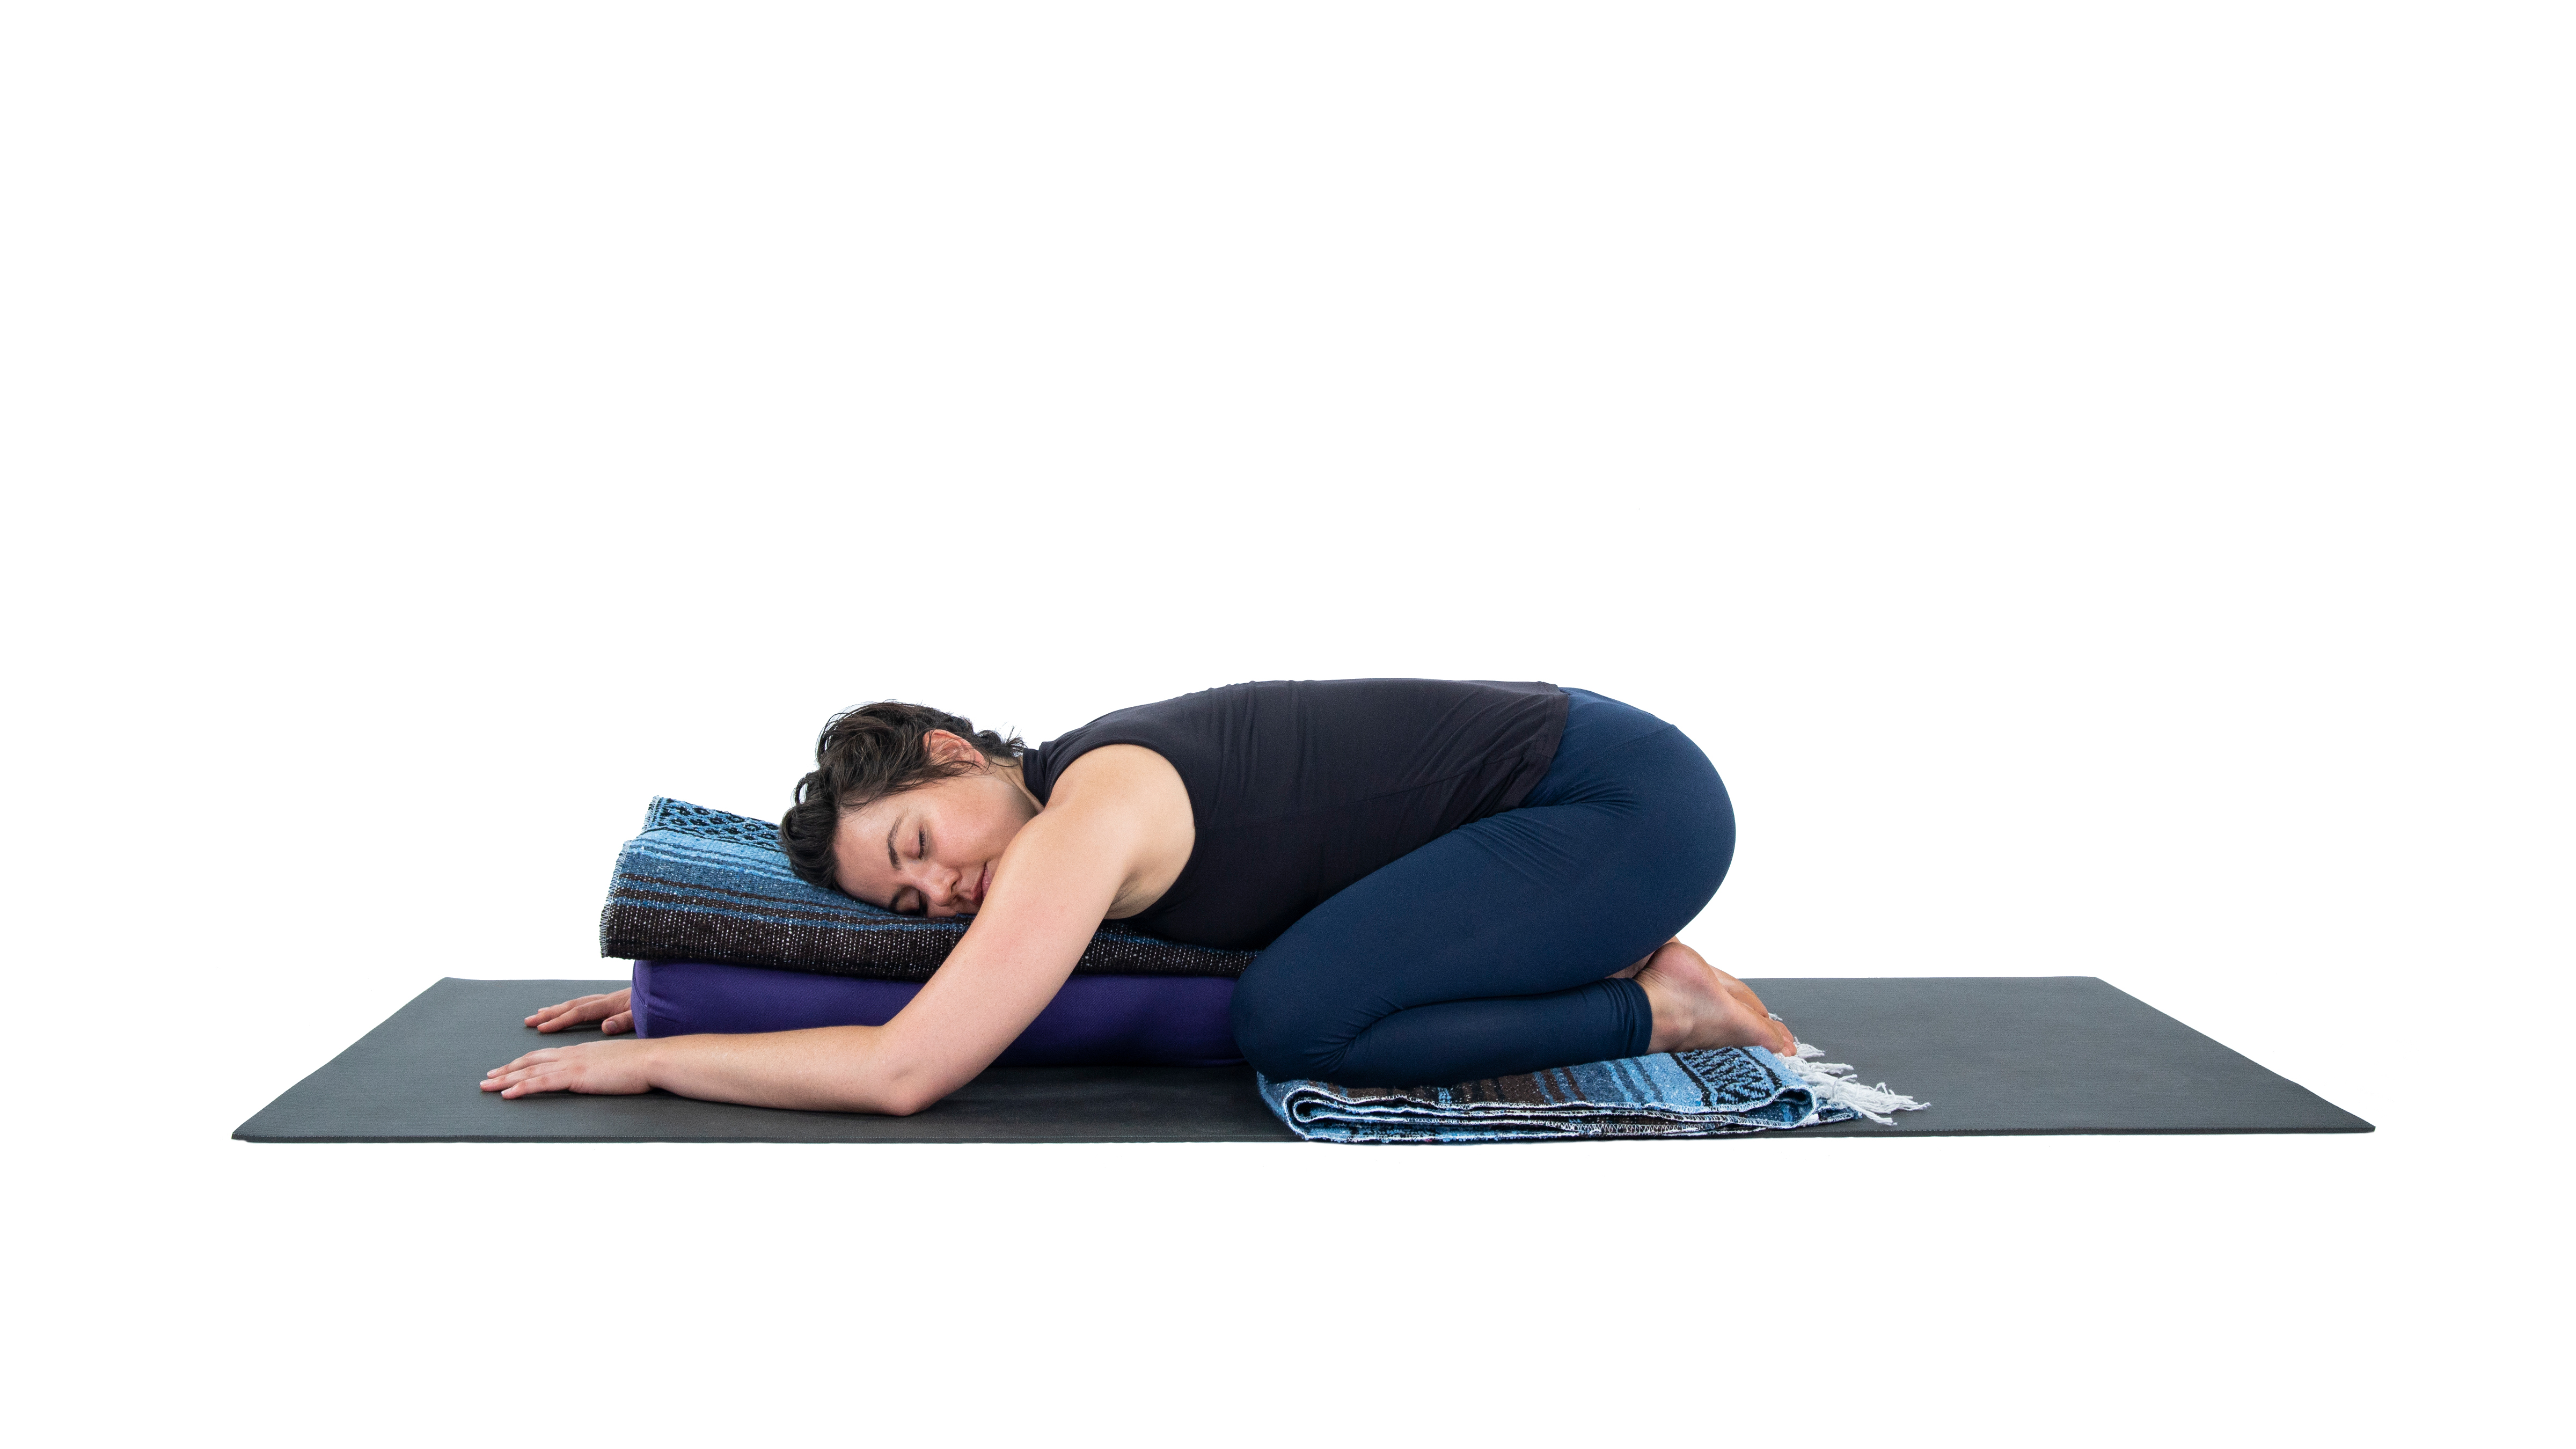 Woman in a variation of Child's Pose (Balasana) with a blanket, practicing restorative yoga